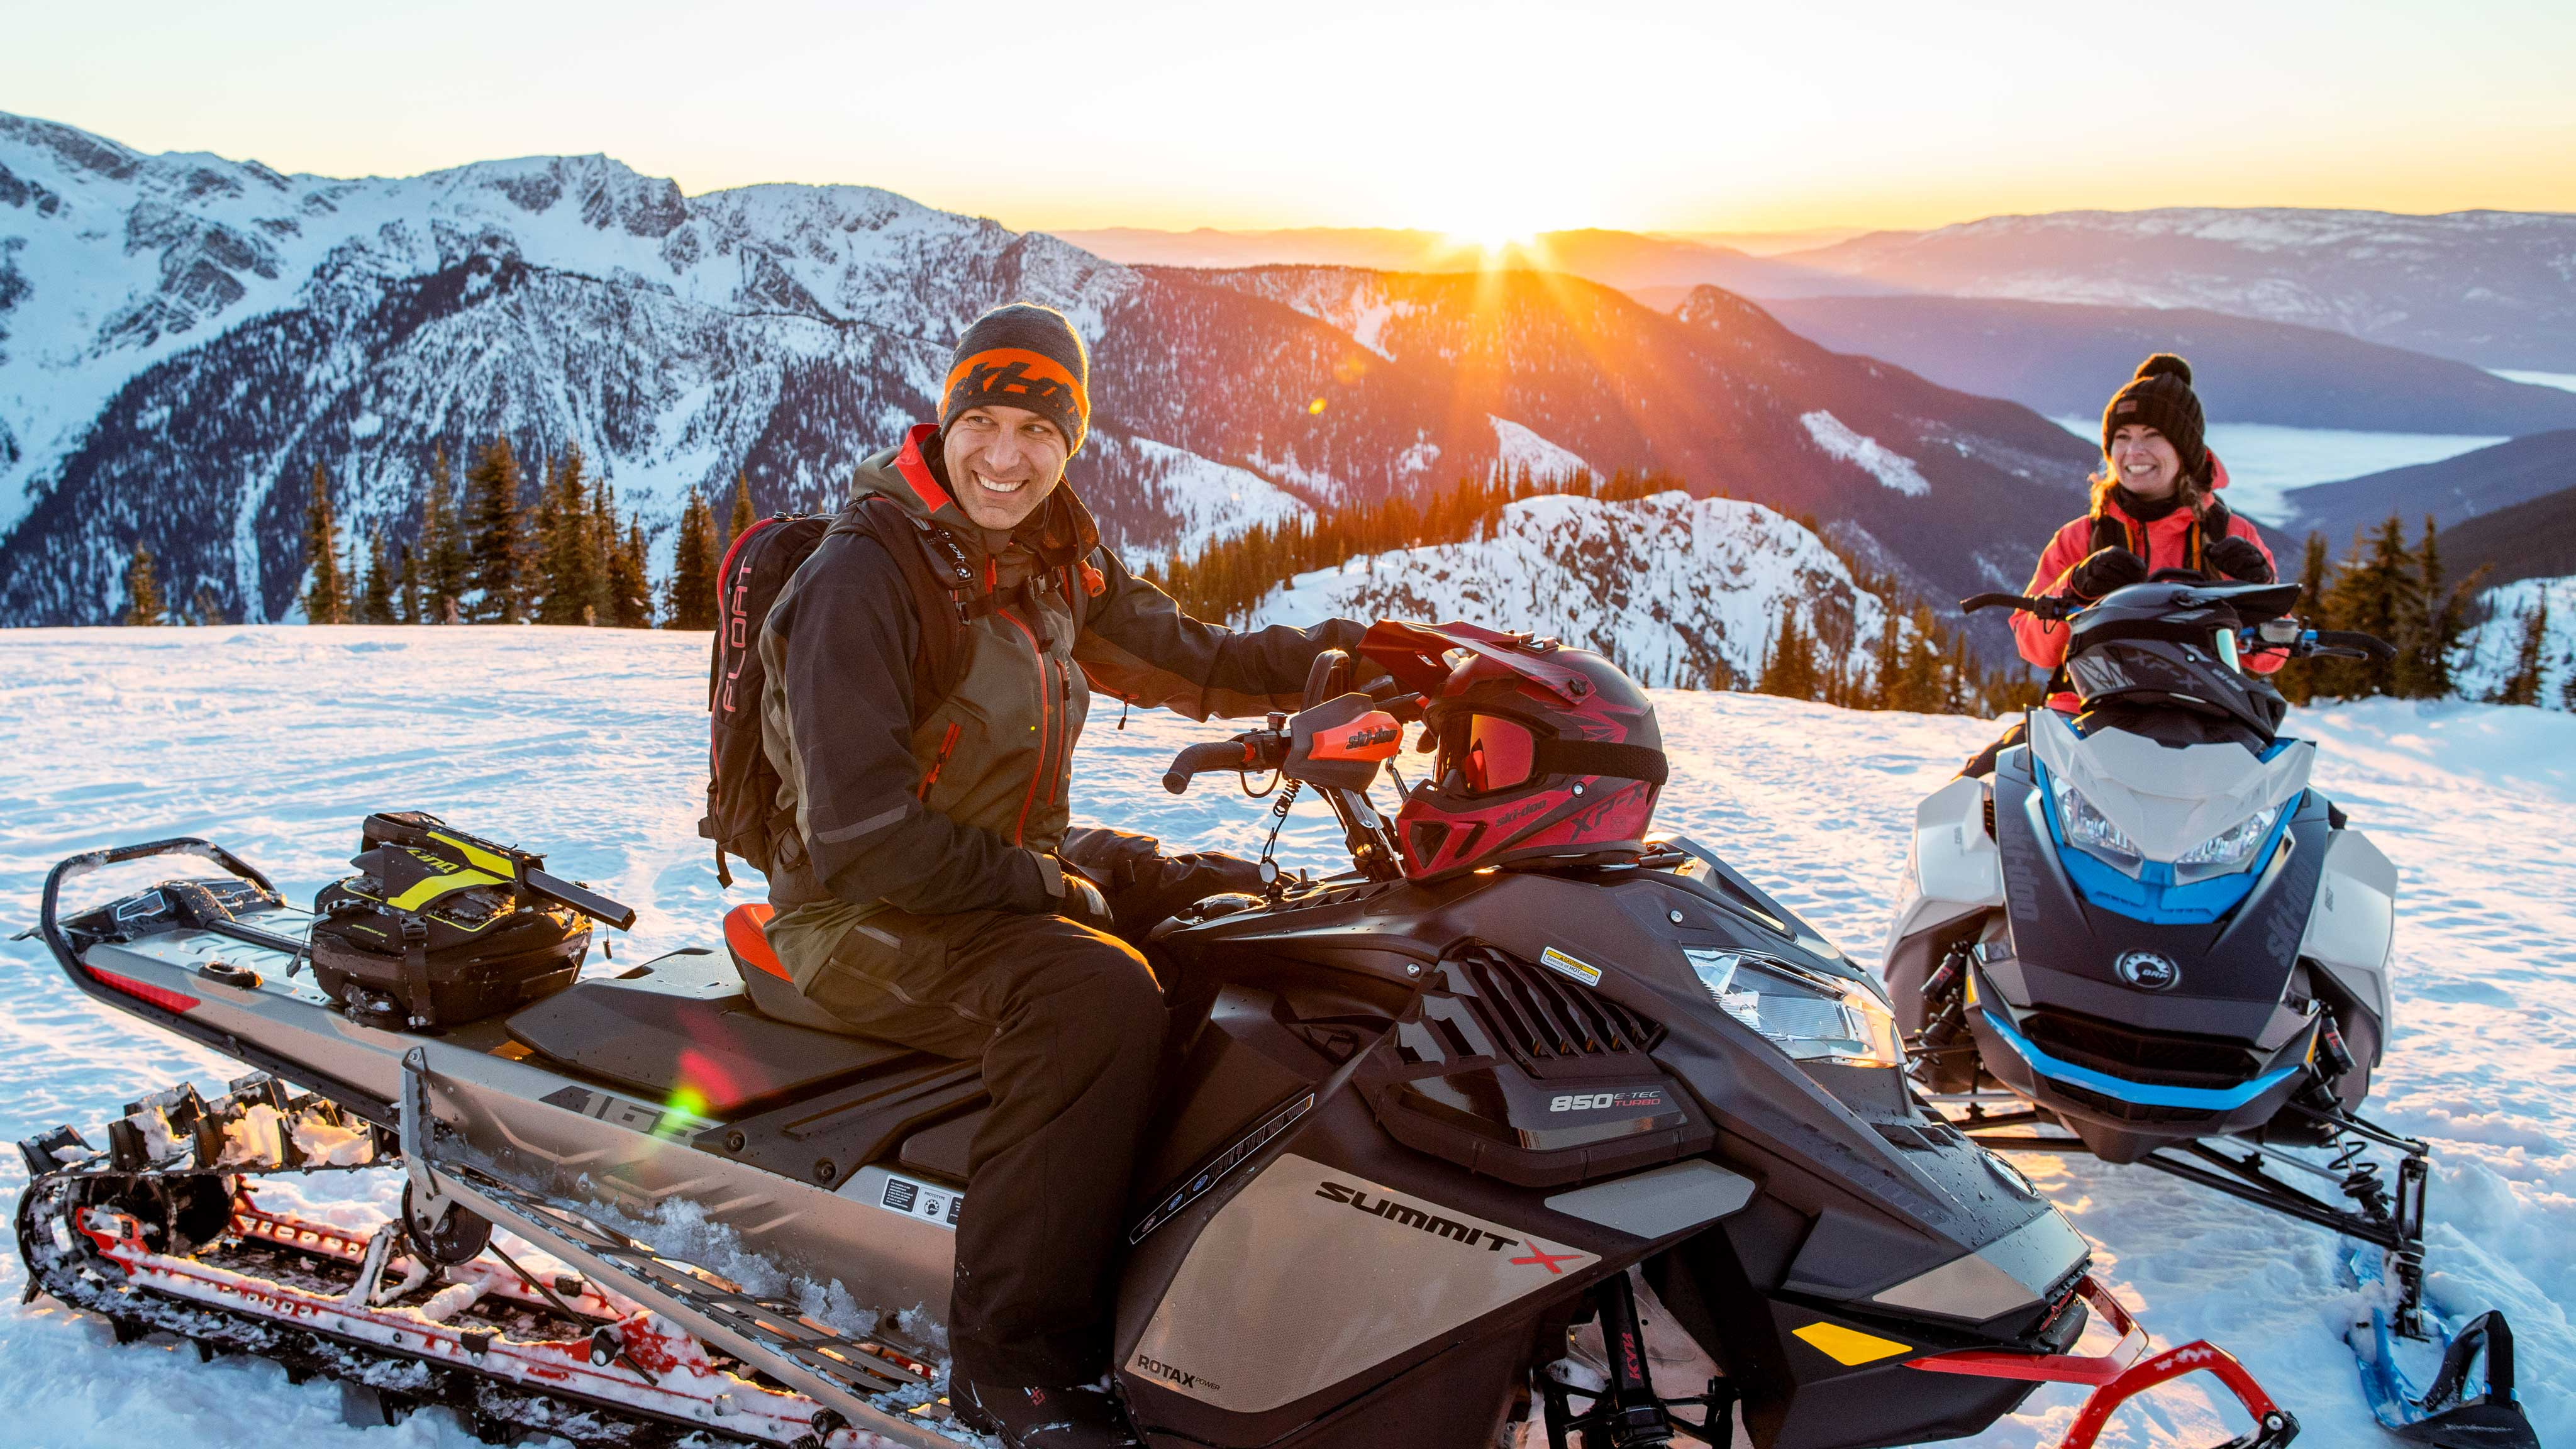 Couple enjoying a Snowmobile backcountry ride at sunset